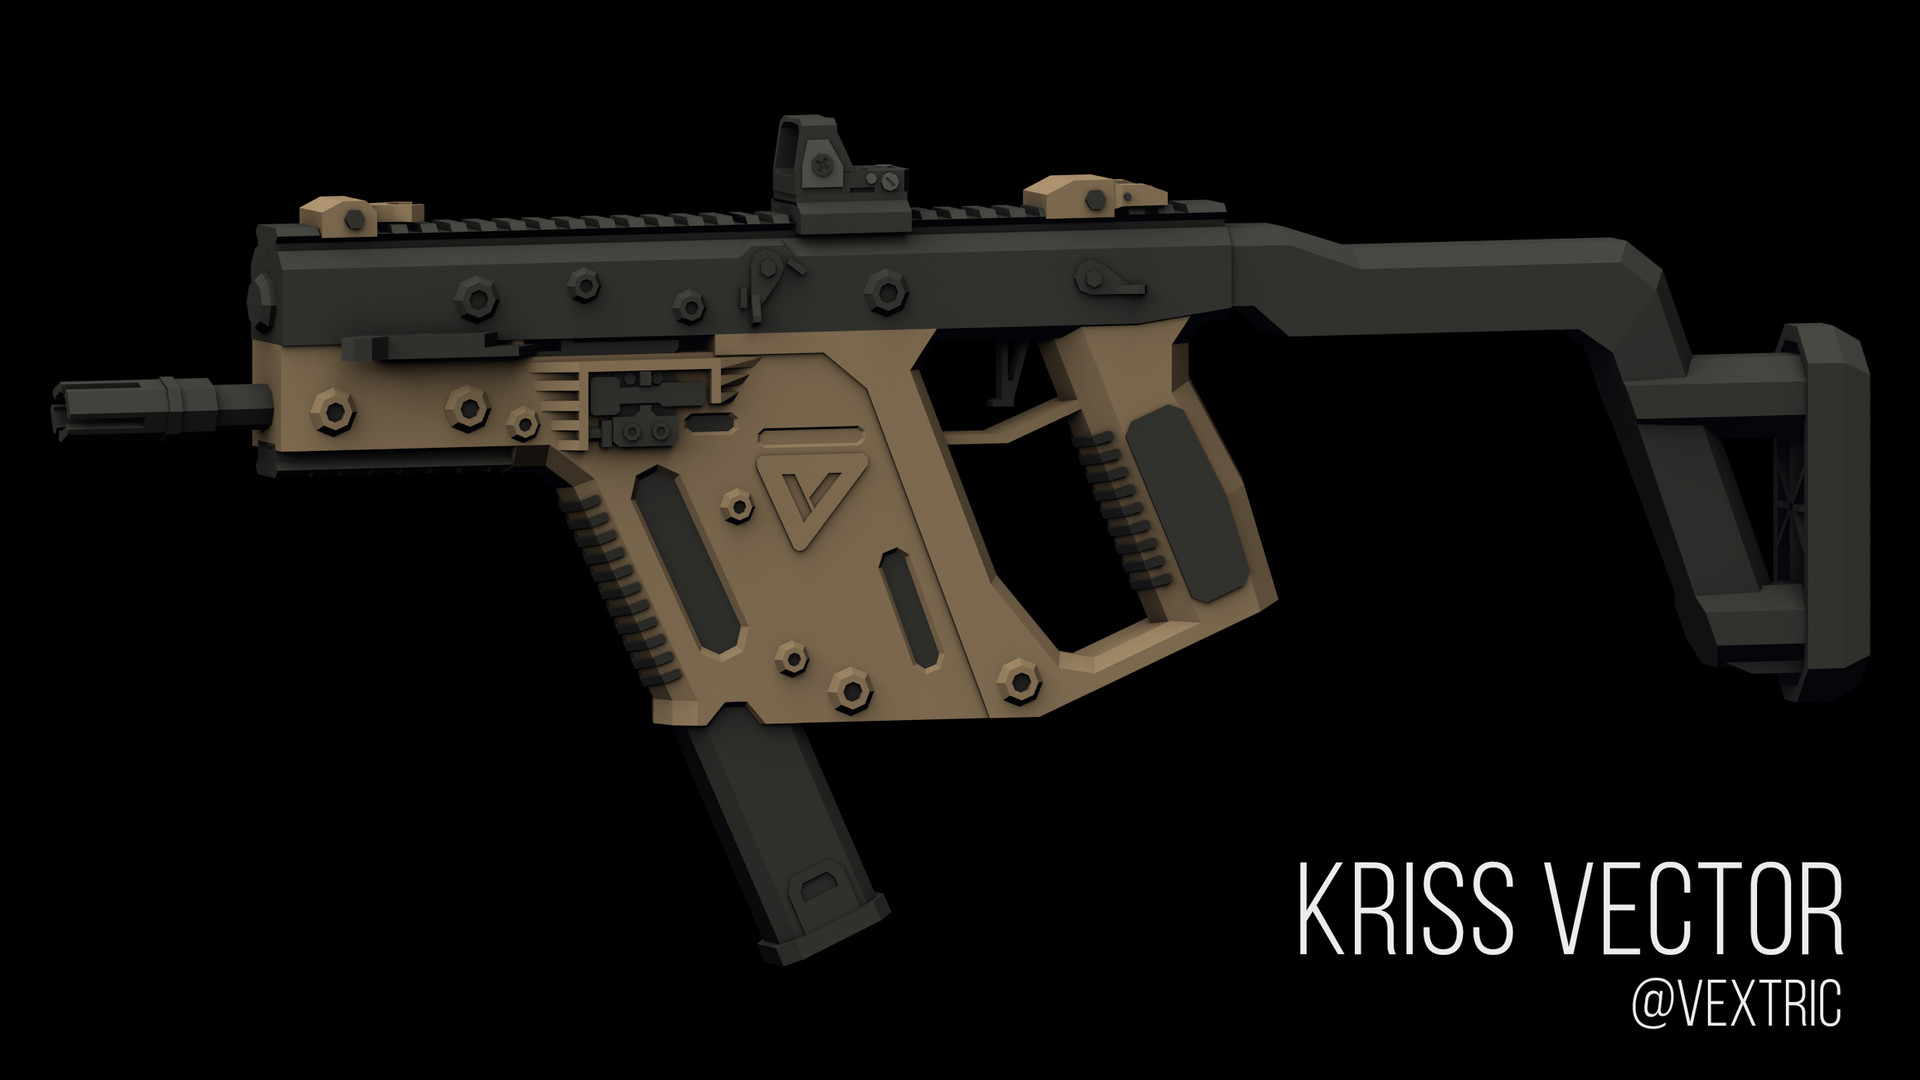 Vextric _ - Low Poly Kriss Vector